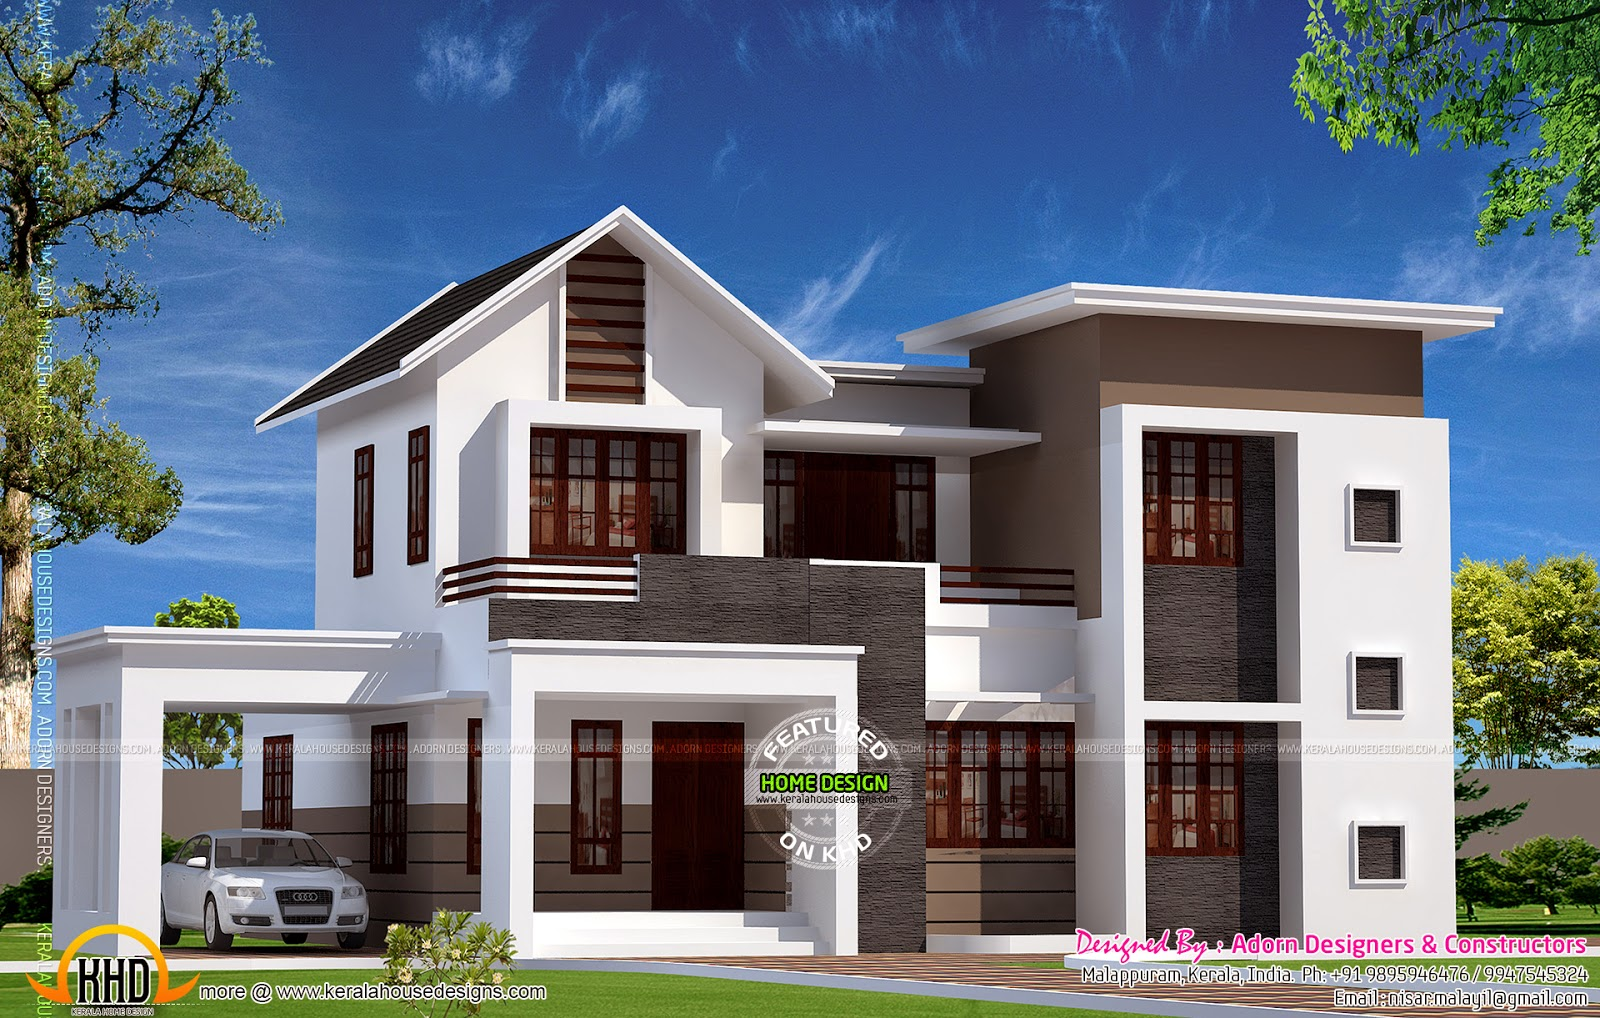 New house design in 1900 sq feet kerala home design and for Latest house designs in kerala